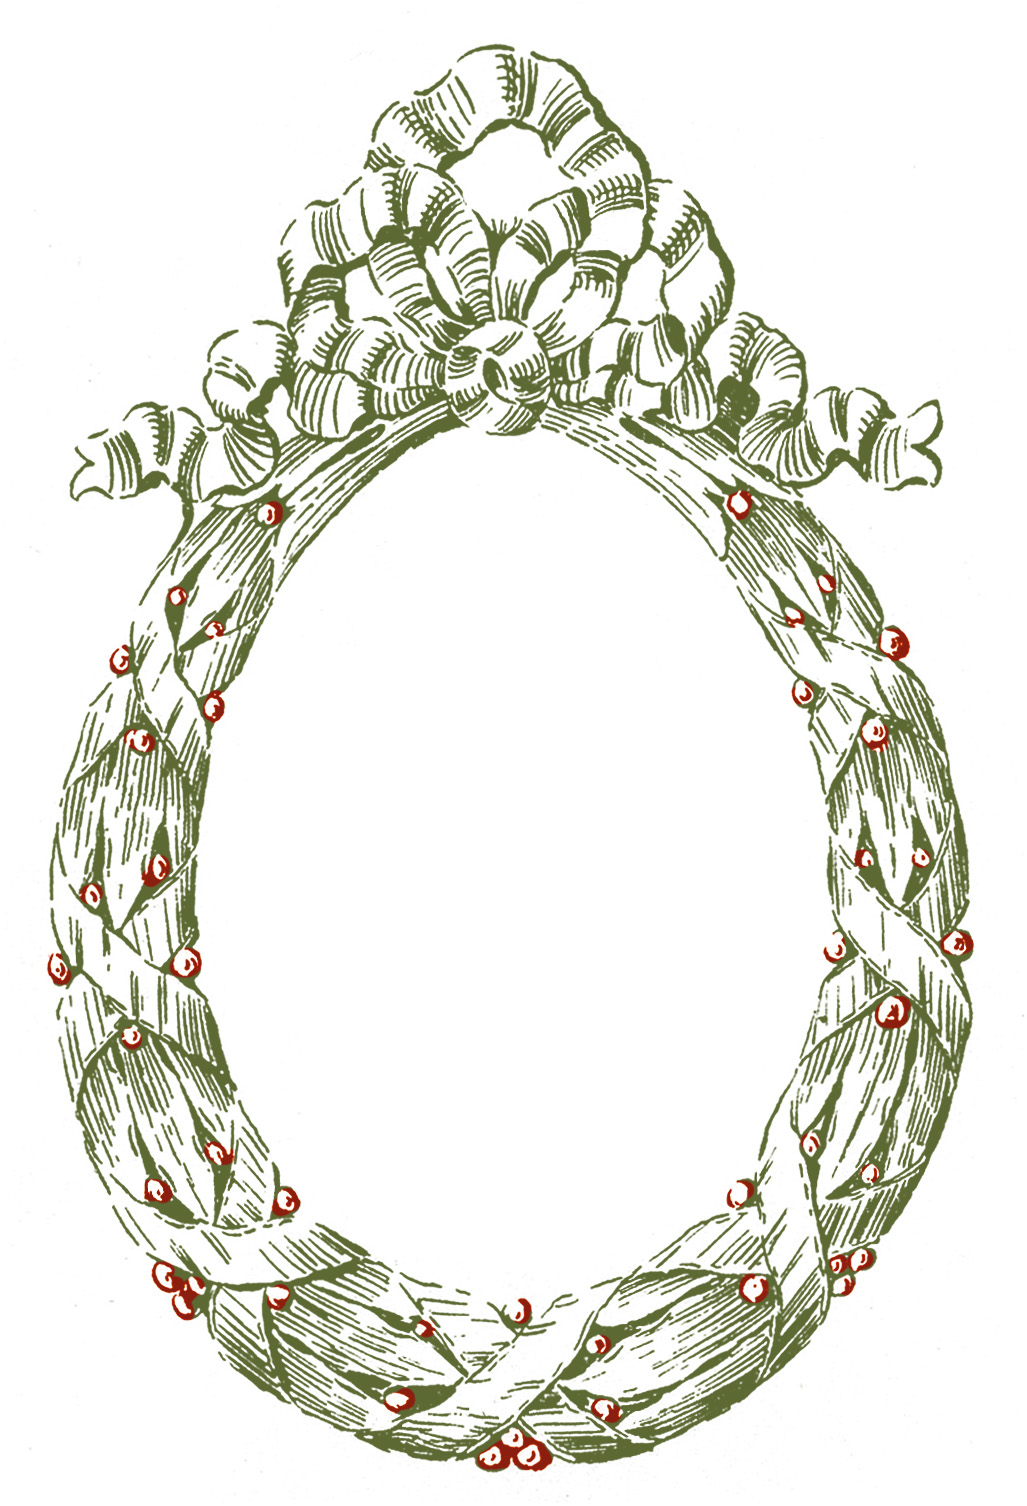 Vintage Graphic Frame - Oval Christmas Wreath - The Graphics Fairy